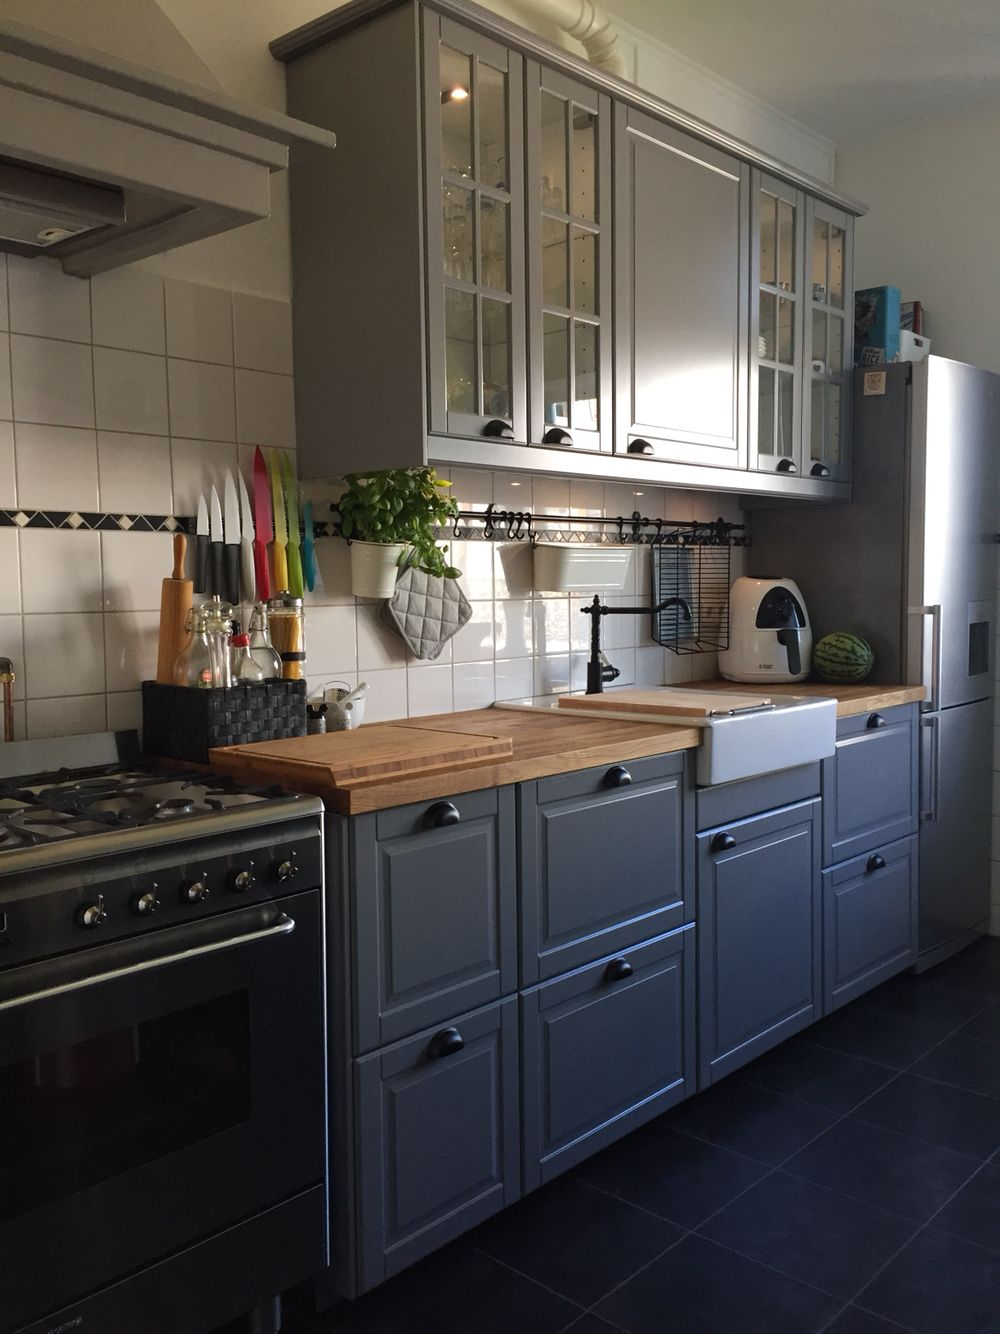 New kitchen ikea bodbyn grey ikea bodbyn pinterest for Kitchen designs grey